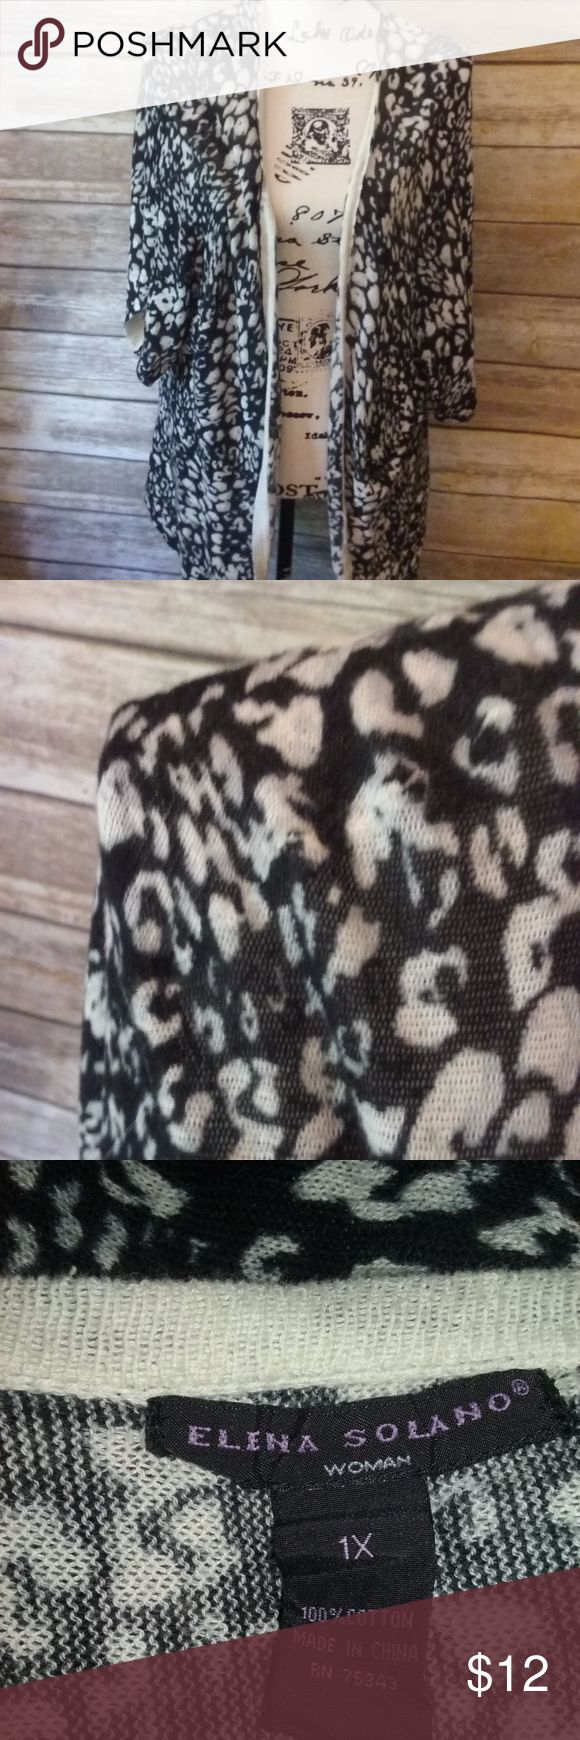 """Elena Solando Woman Leopard Cardigan Size 1X Lightweight black and white leopard print cardigan, comes to long points in the front.  Made by Elena Solando Woman, size 1X, measures approximately 36"""" long from back collar to longest front point and 18.5"""" underarm to underarm. Elena Solando Woman Sweaters Cardigans"""